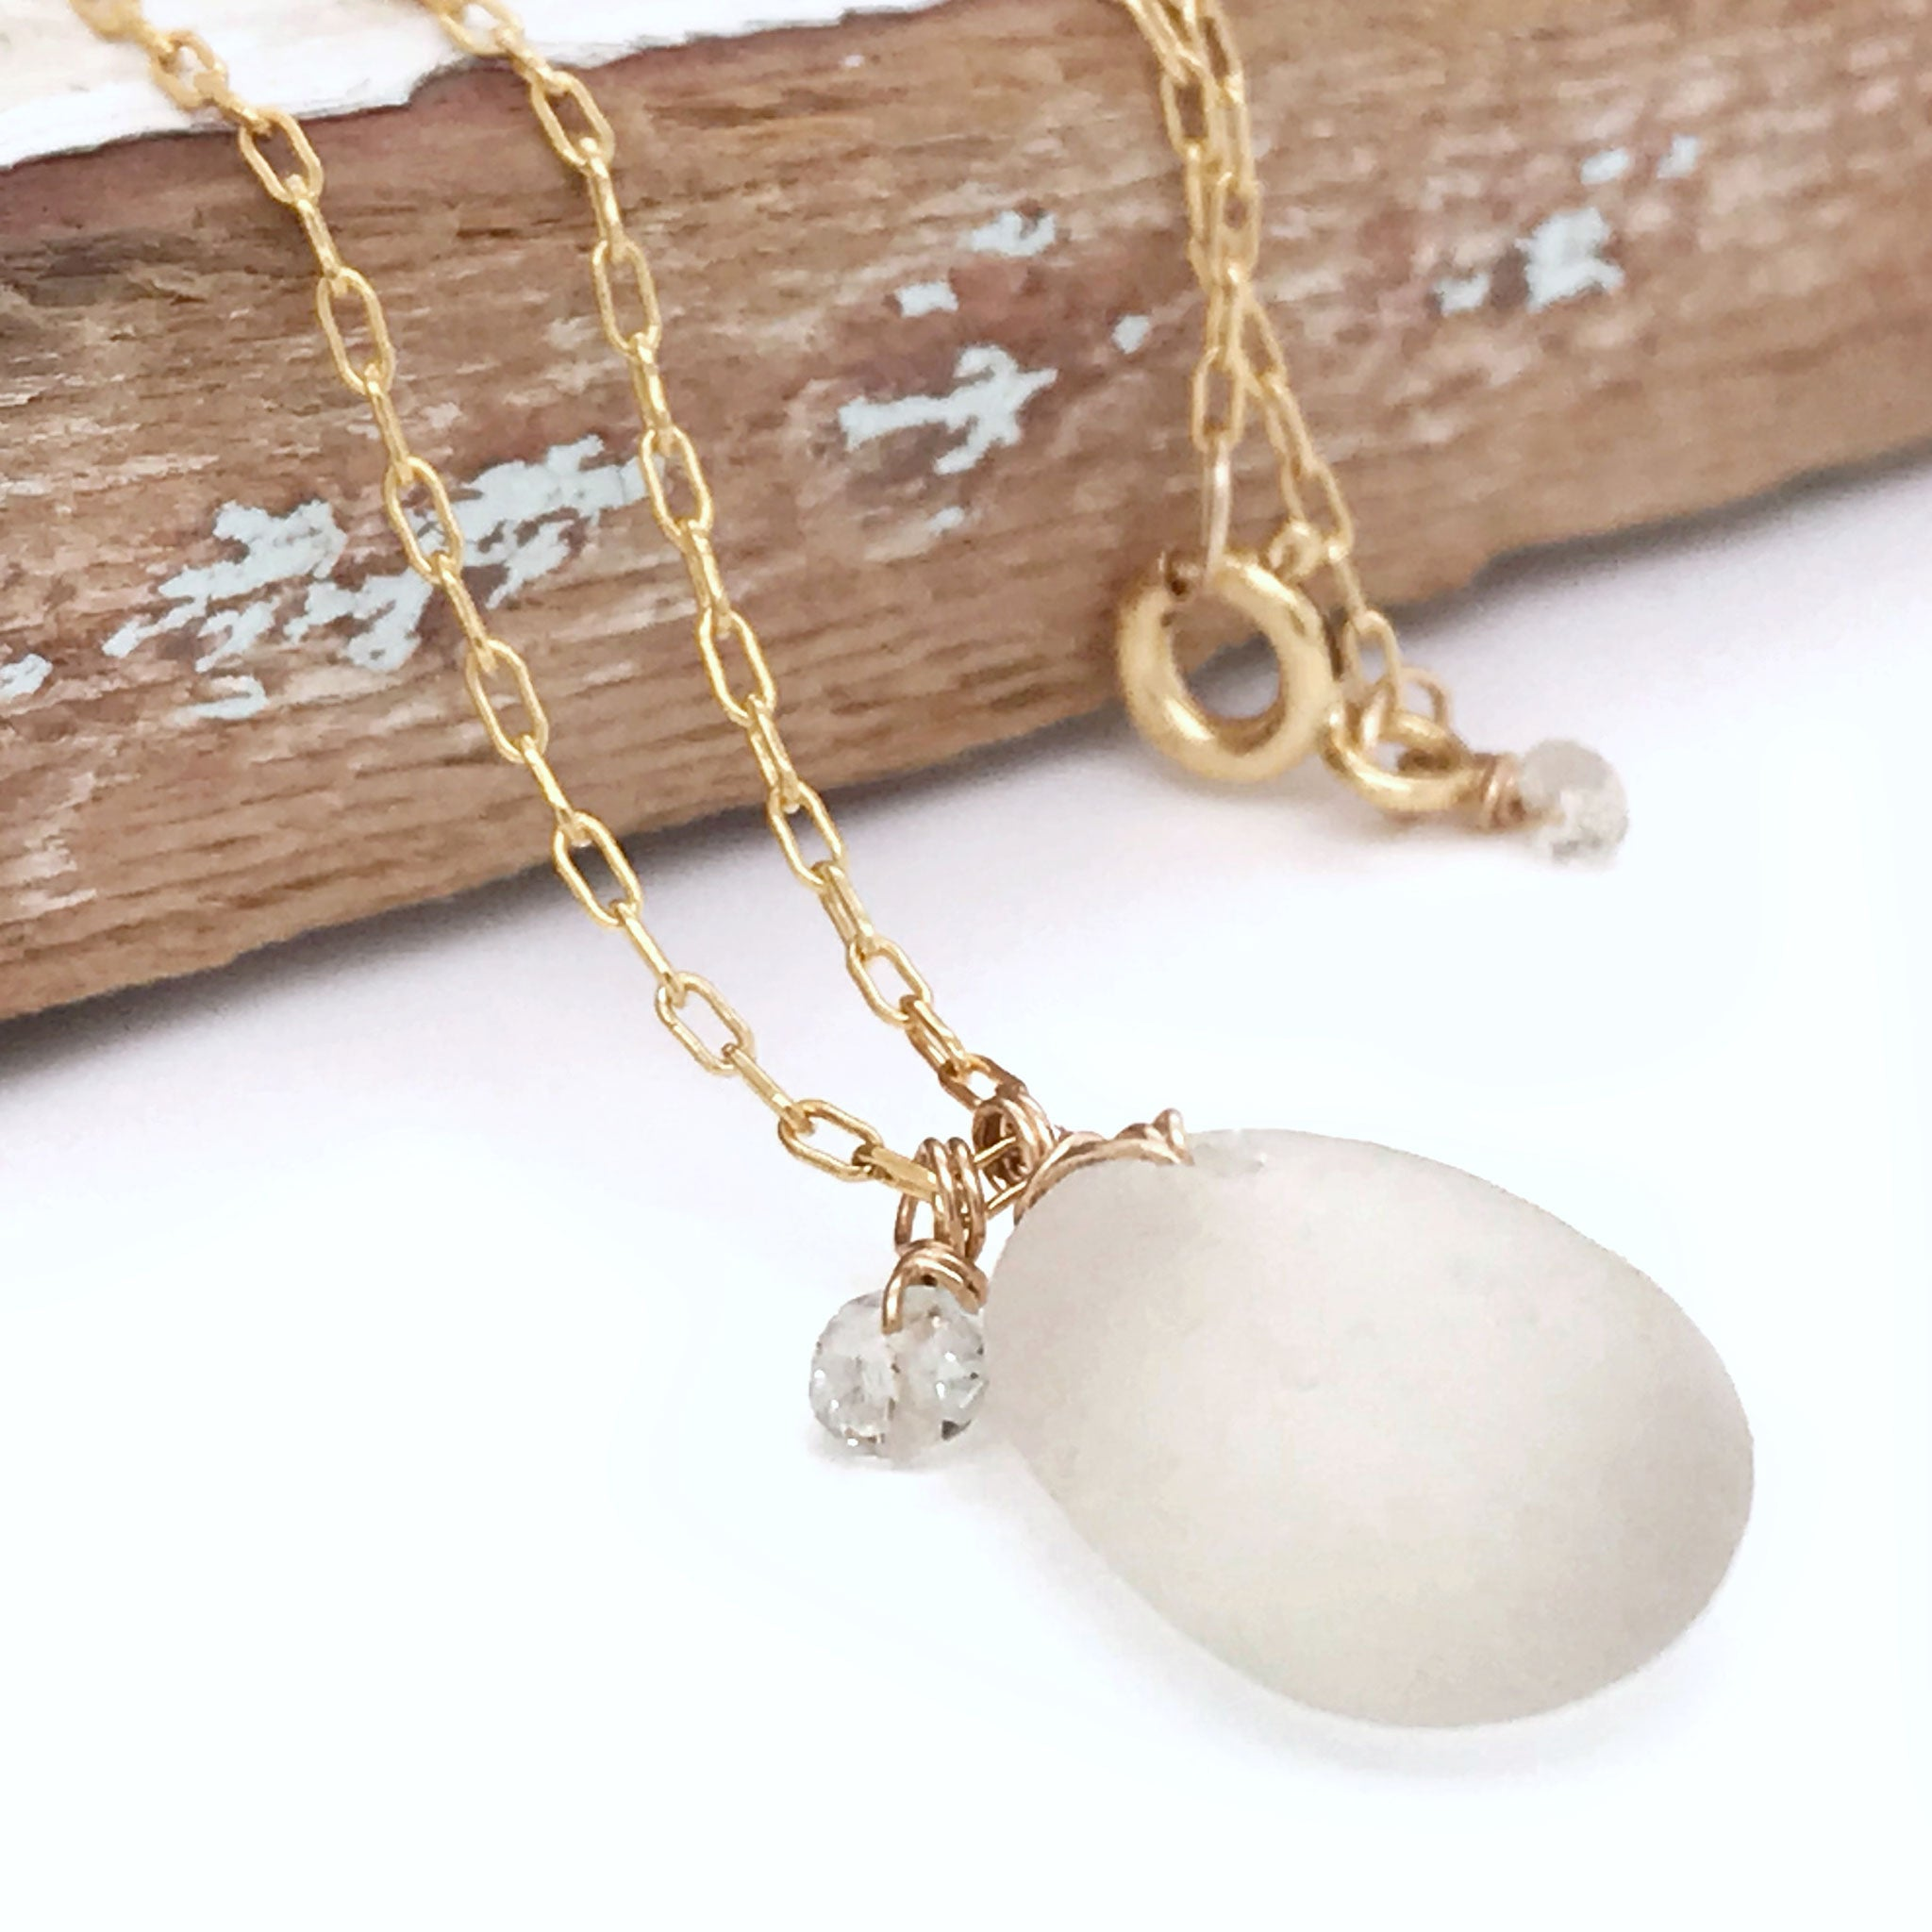 clear seaglass necklace gold chain aquamarines kriket broadhurst jewellery